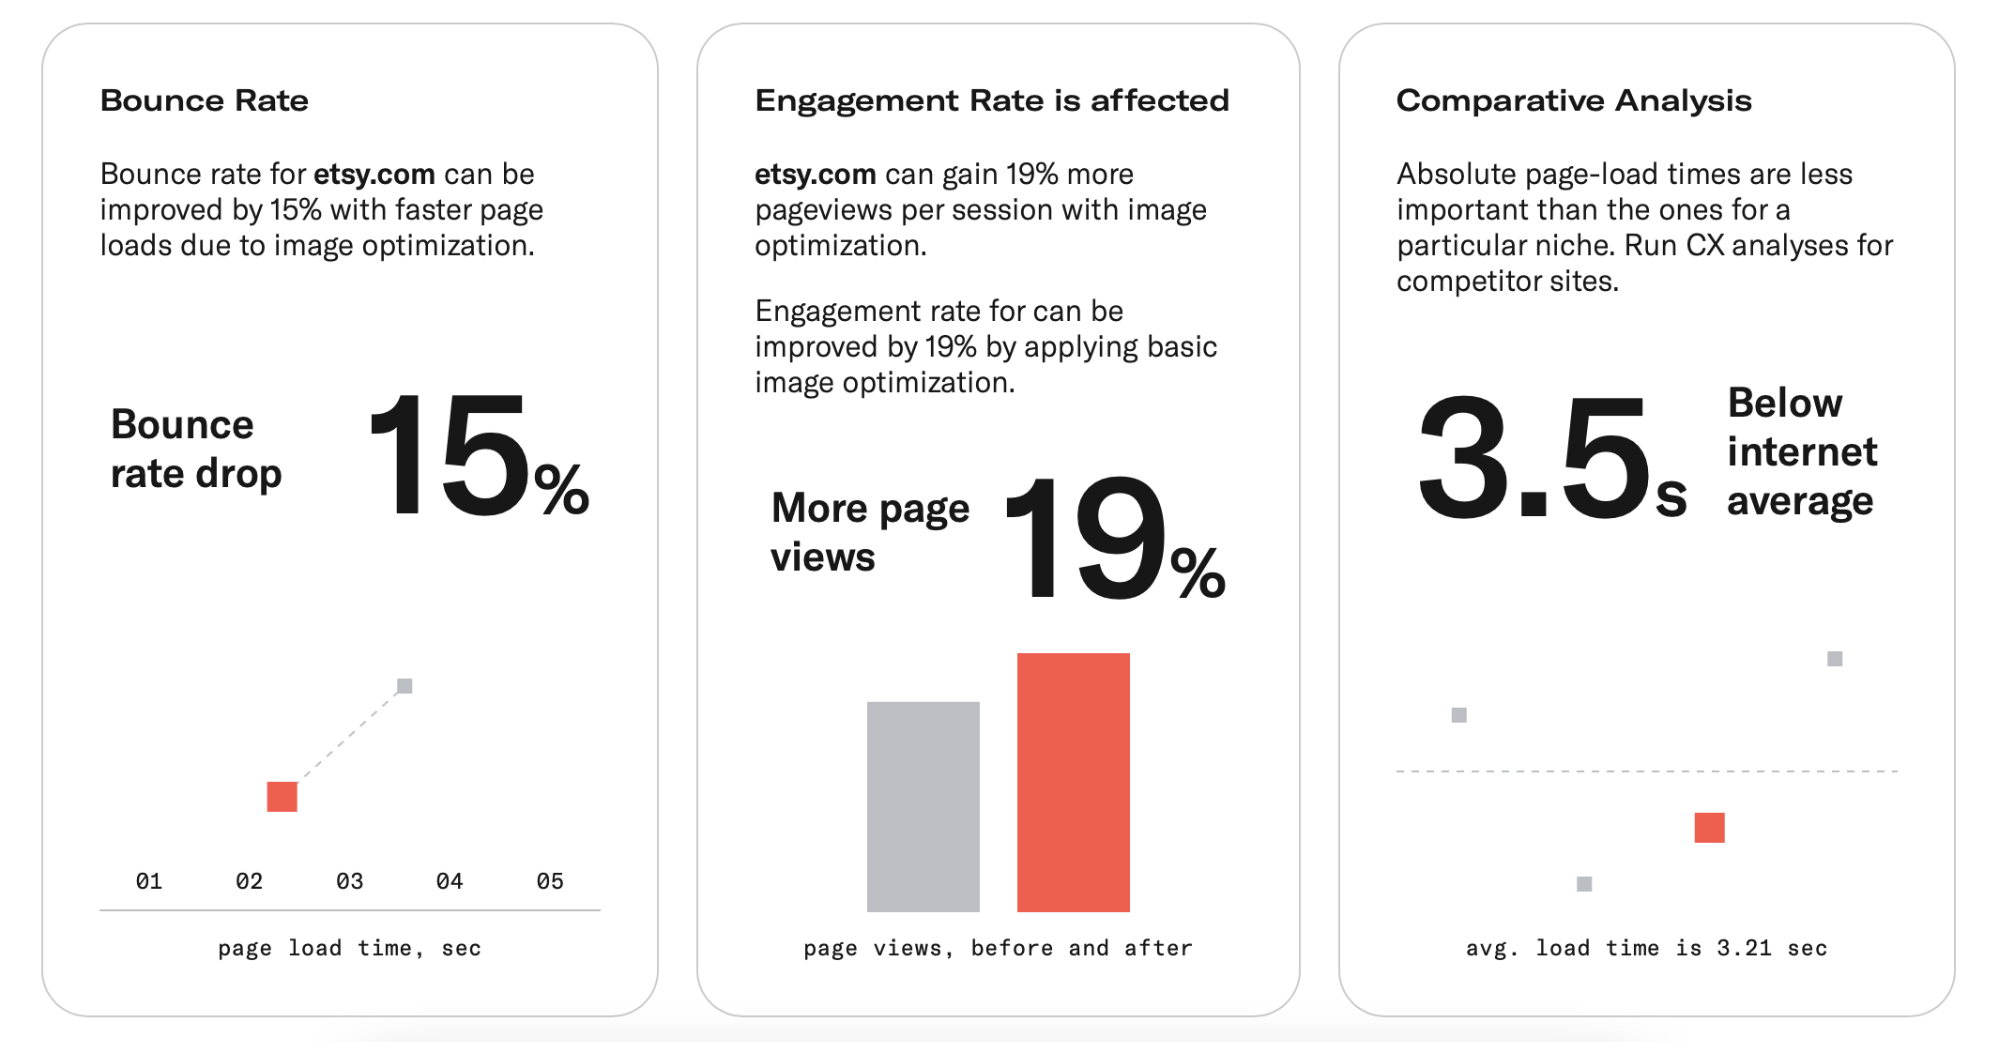 Image optimization insights for an online retailer